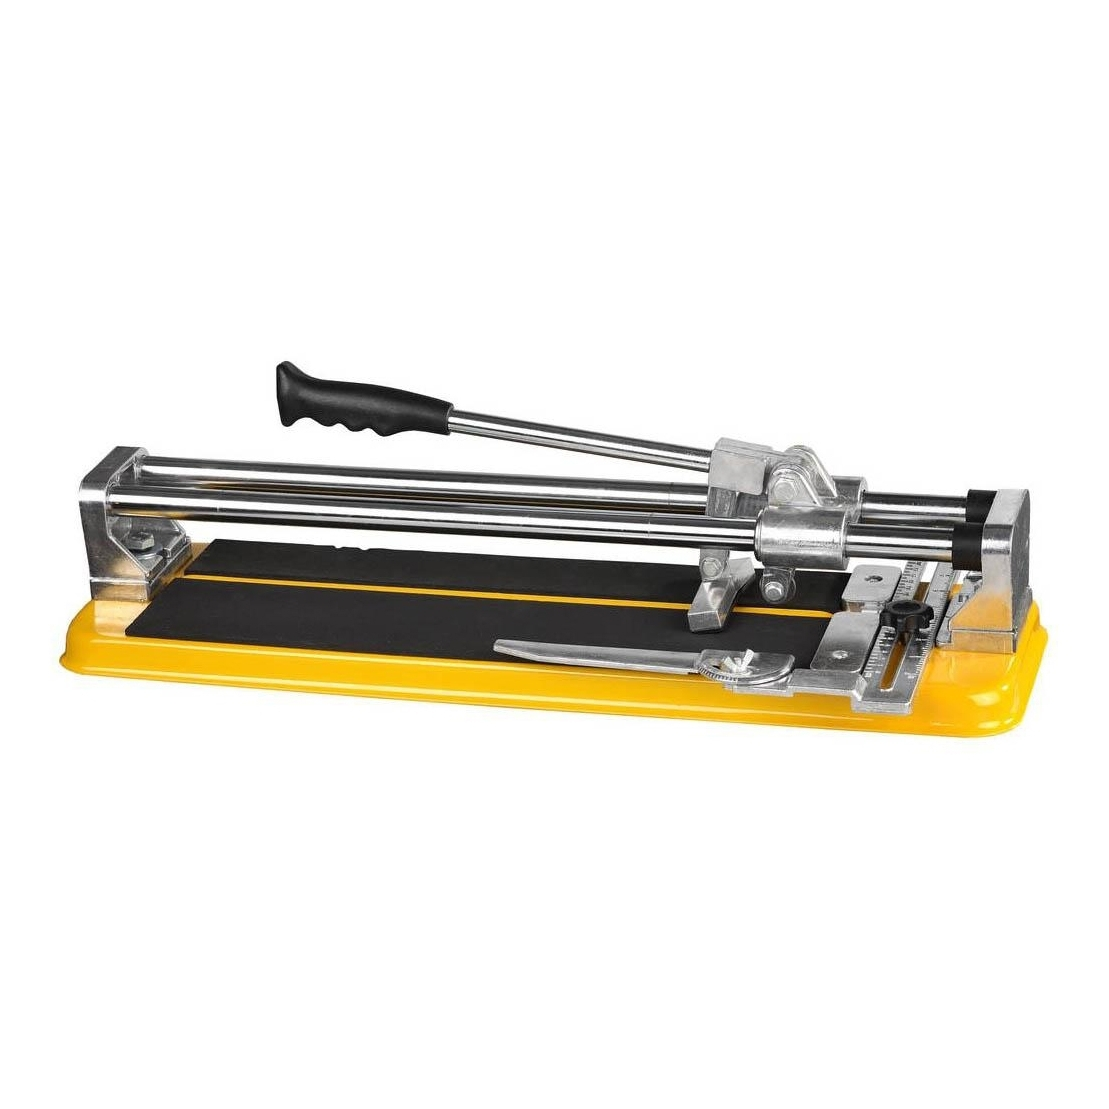 Tile cutter STAYER 3318-40